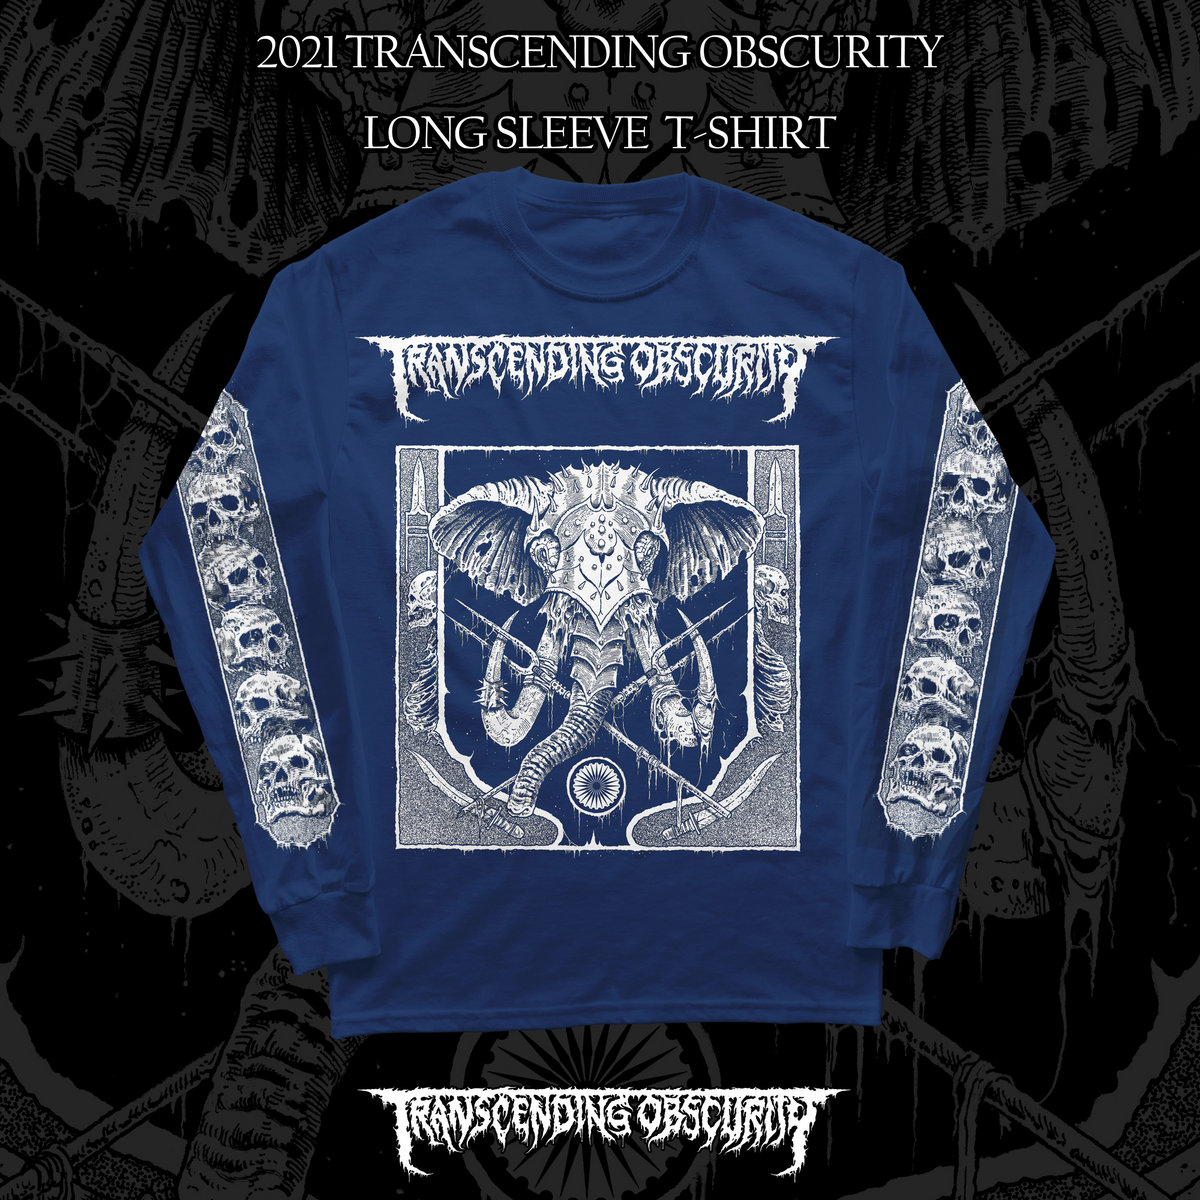 2021 Label Sampler Blue Long Sleeve T-shirt Variant #1 (War Elephant)